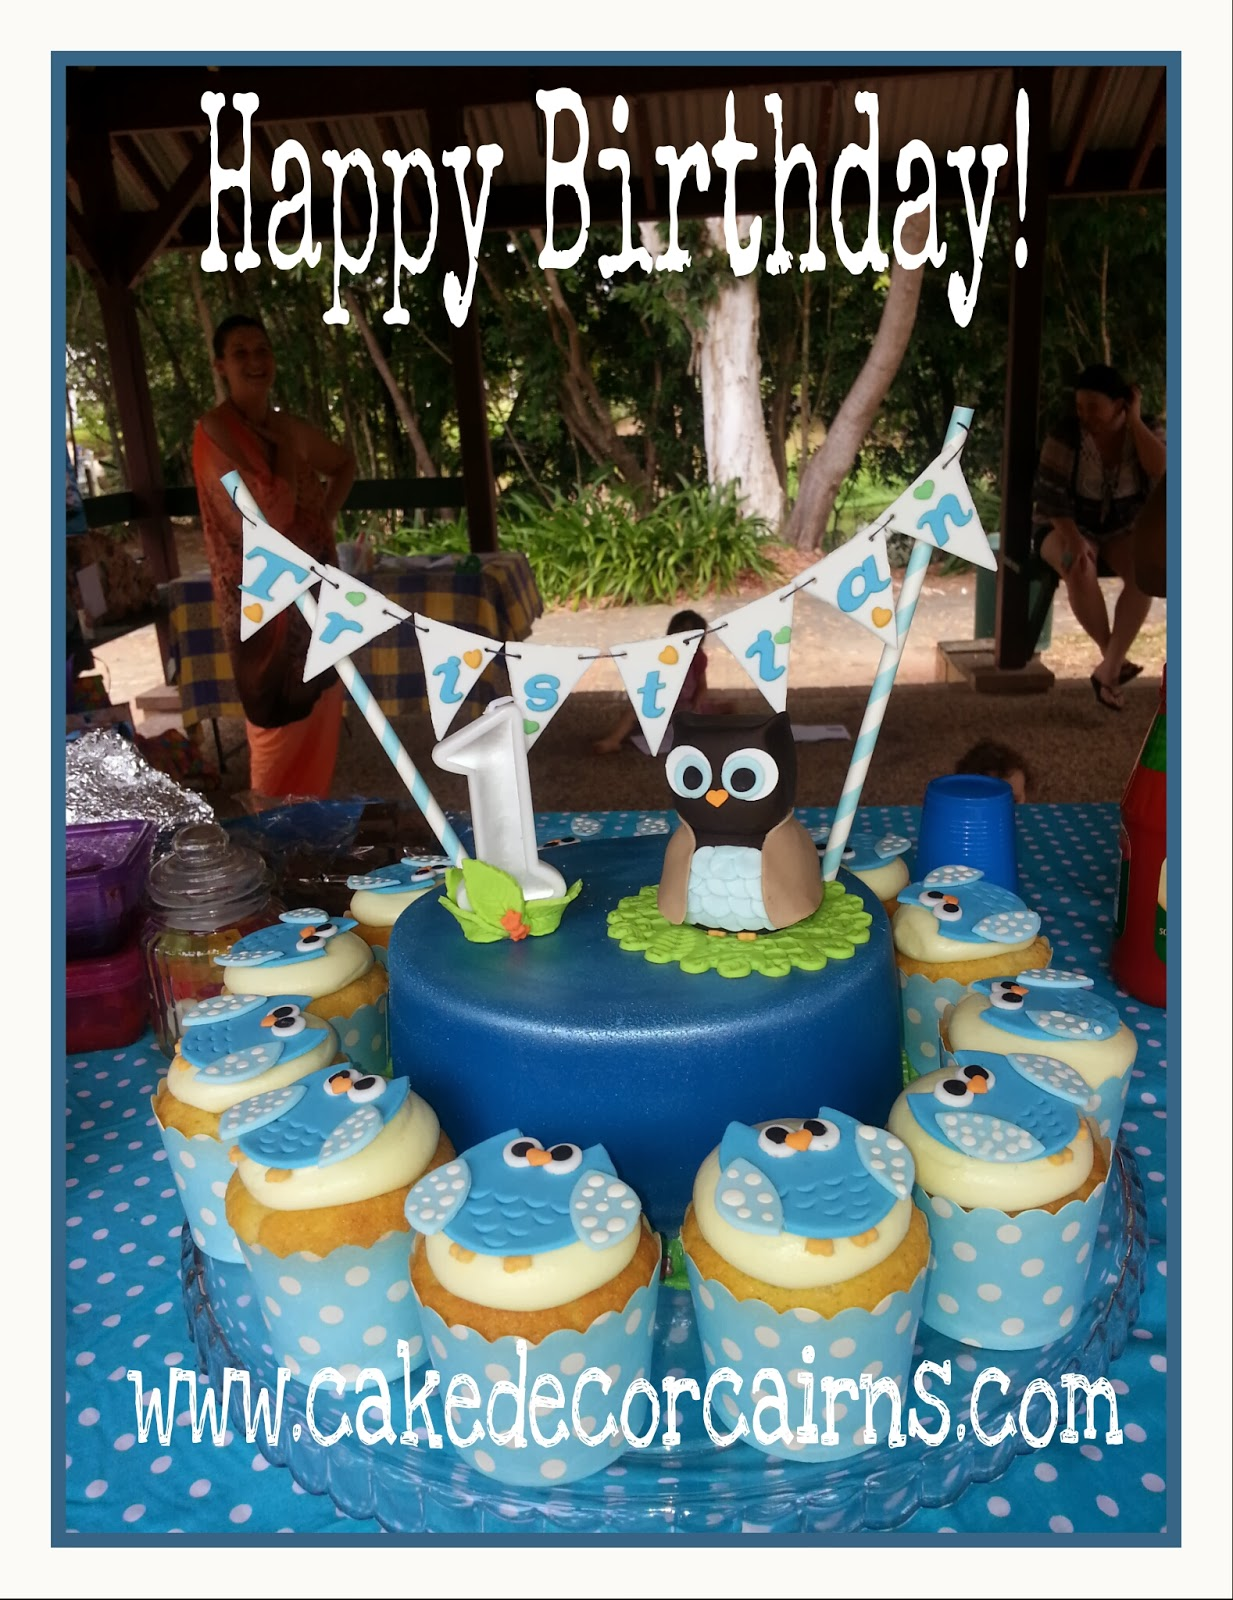 Owl Fondant Topper Edible Bunting Happy Birthday Blue and white Polka Dot Cupcakes 1st birthday Ideas